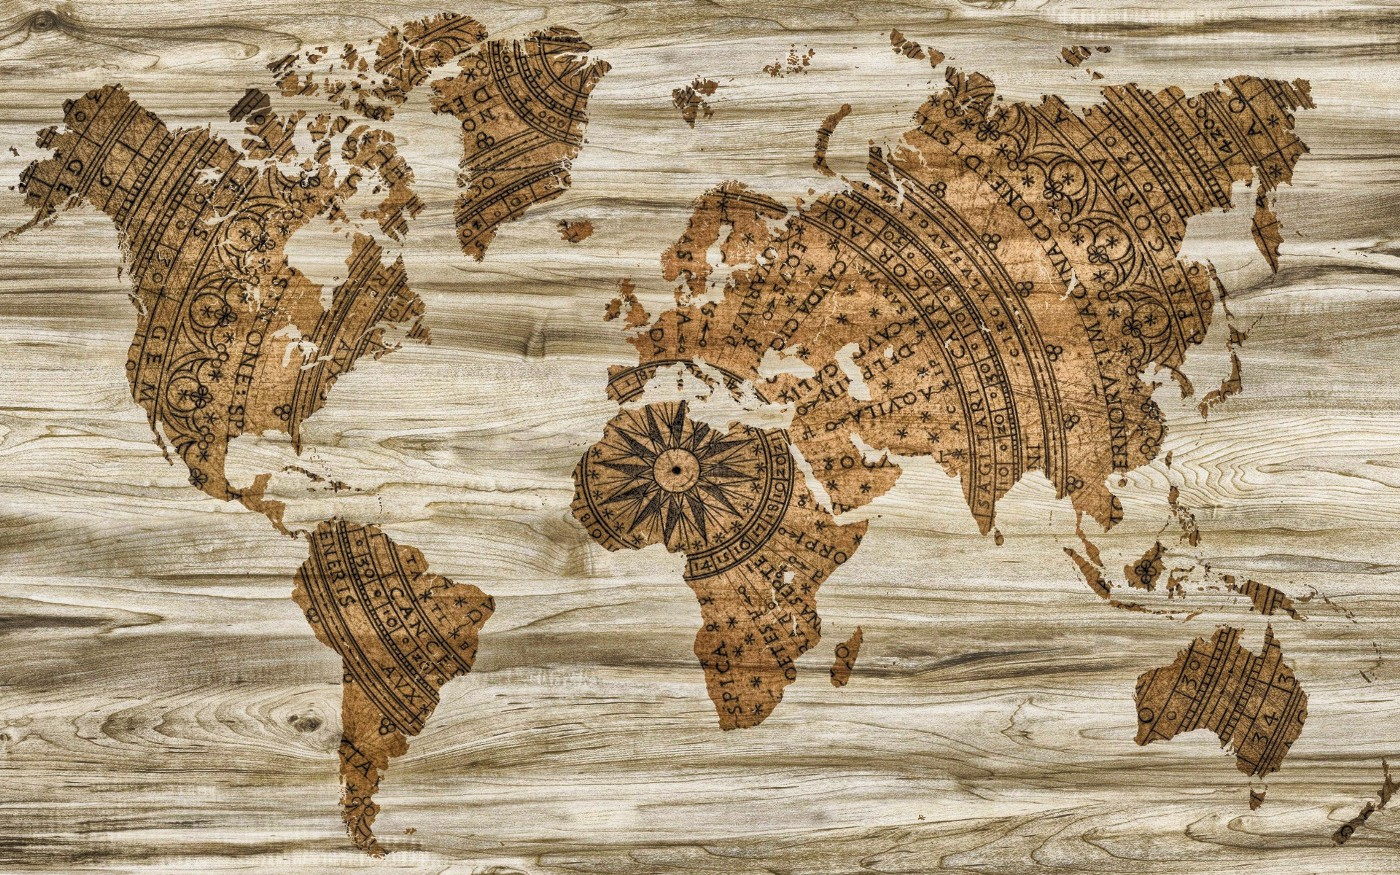 A map of the world against a wooden background.